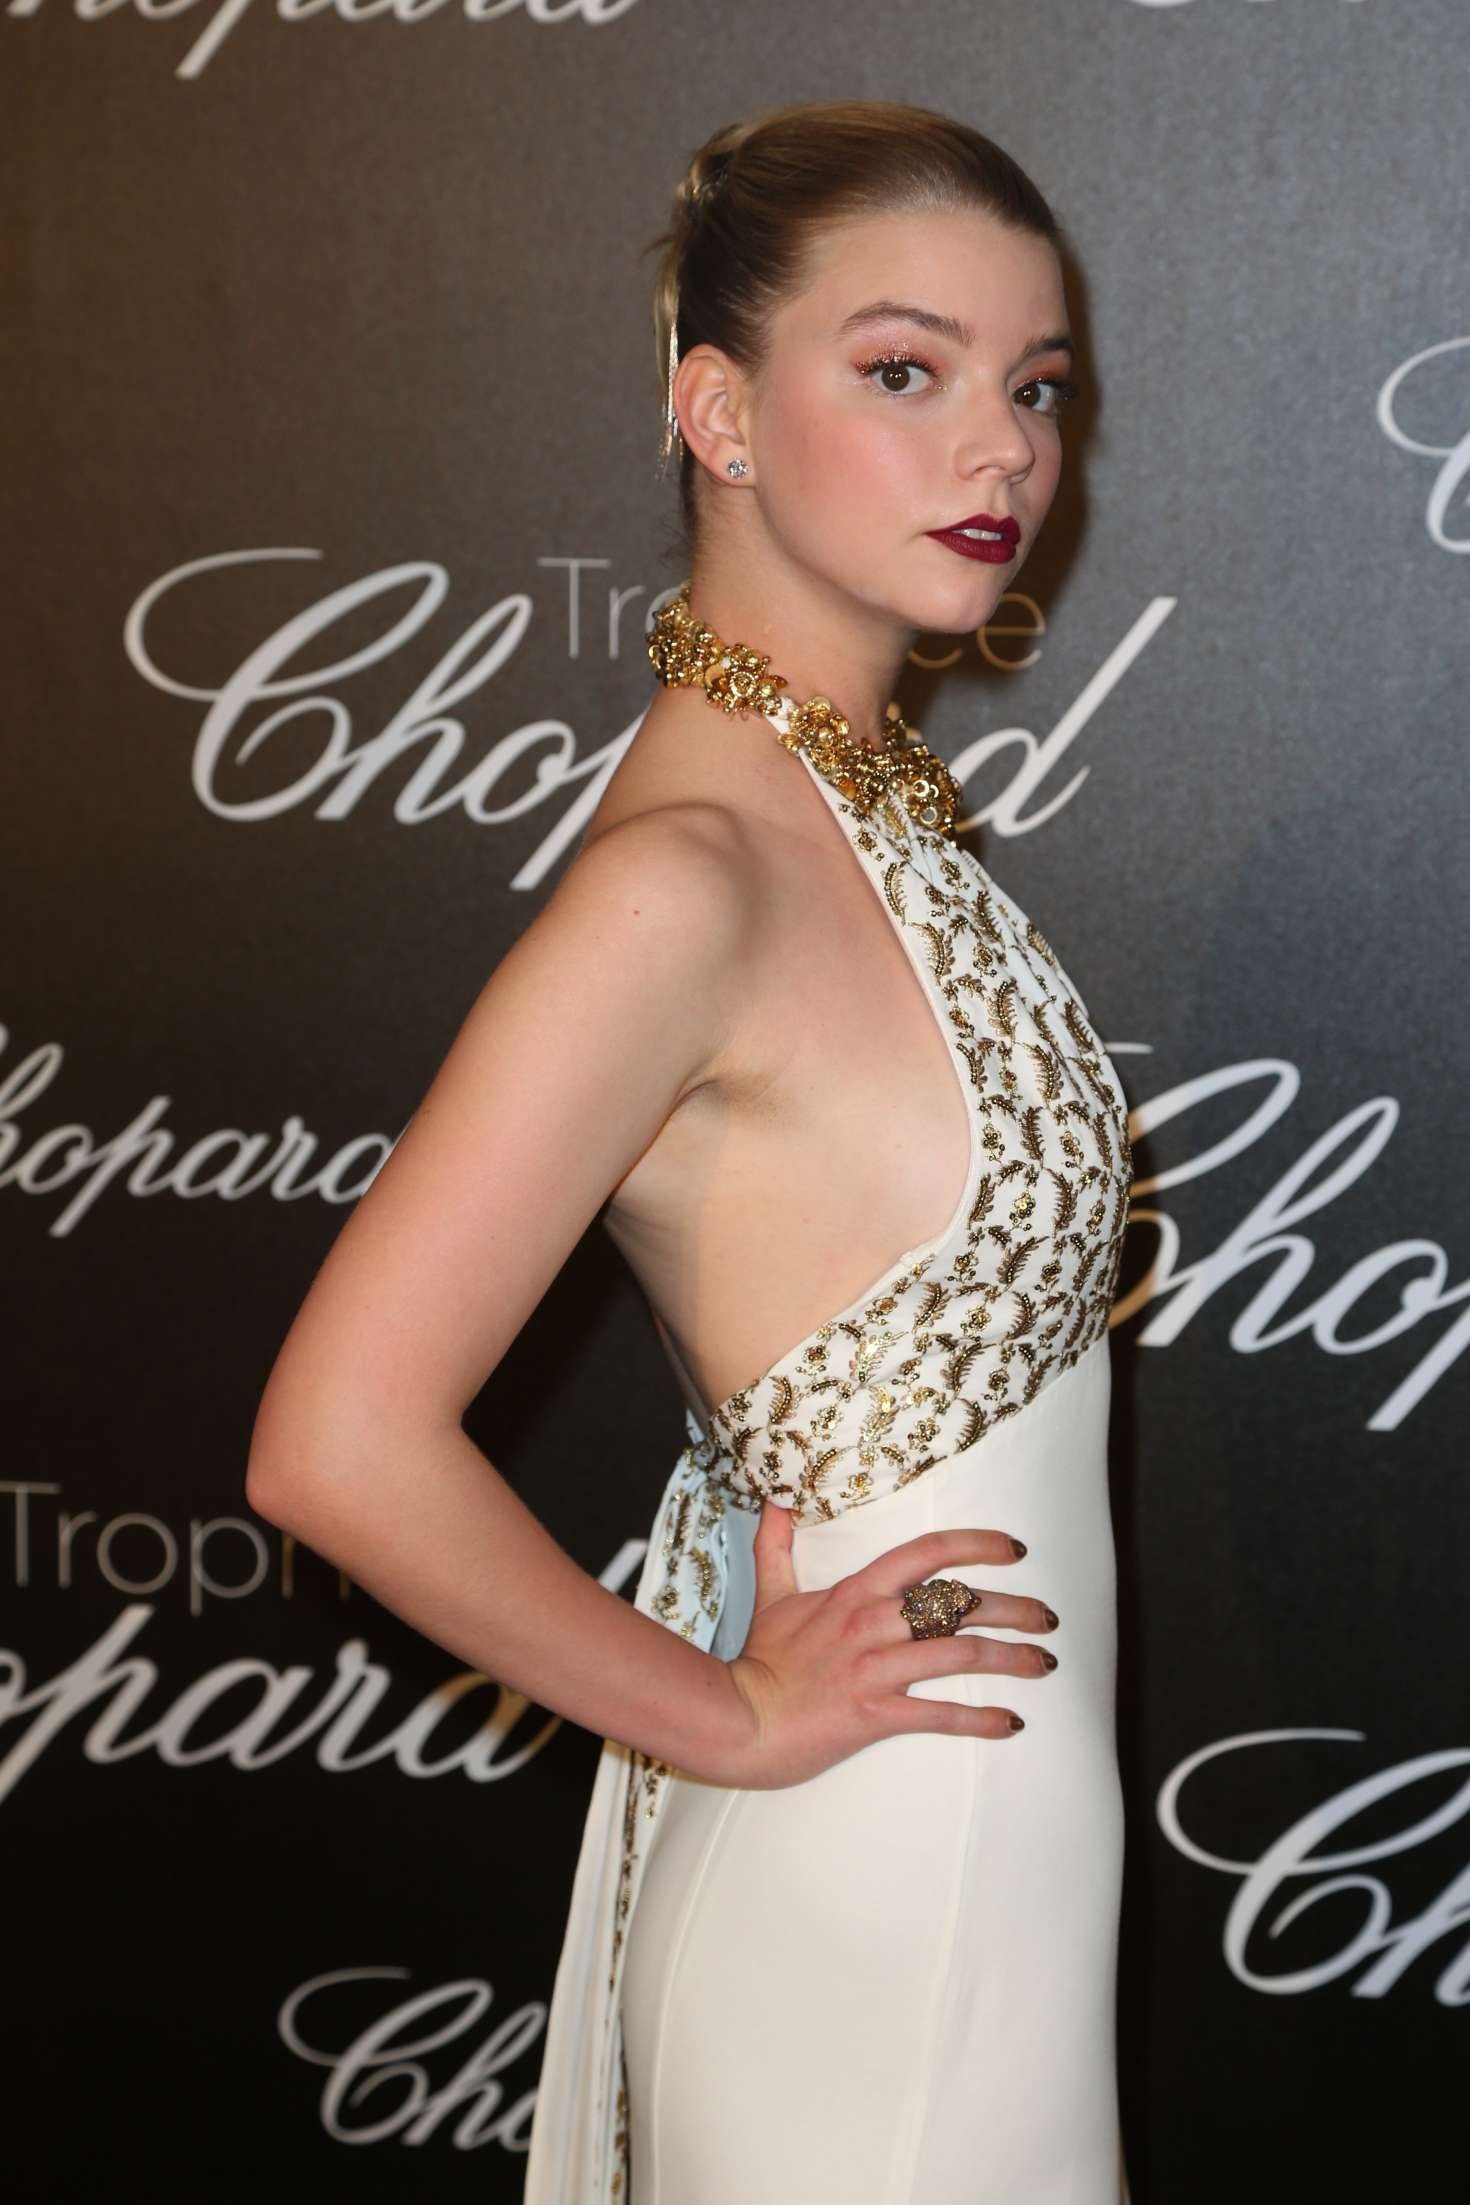 Anya Taylor-Joy - Chopard Trophee Event at 70th Cannes Film Festival